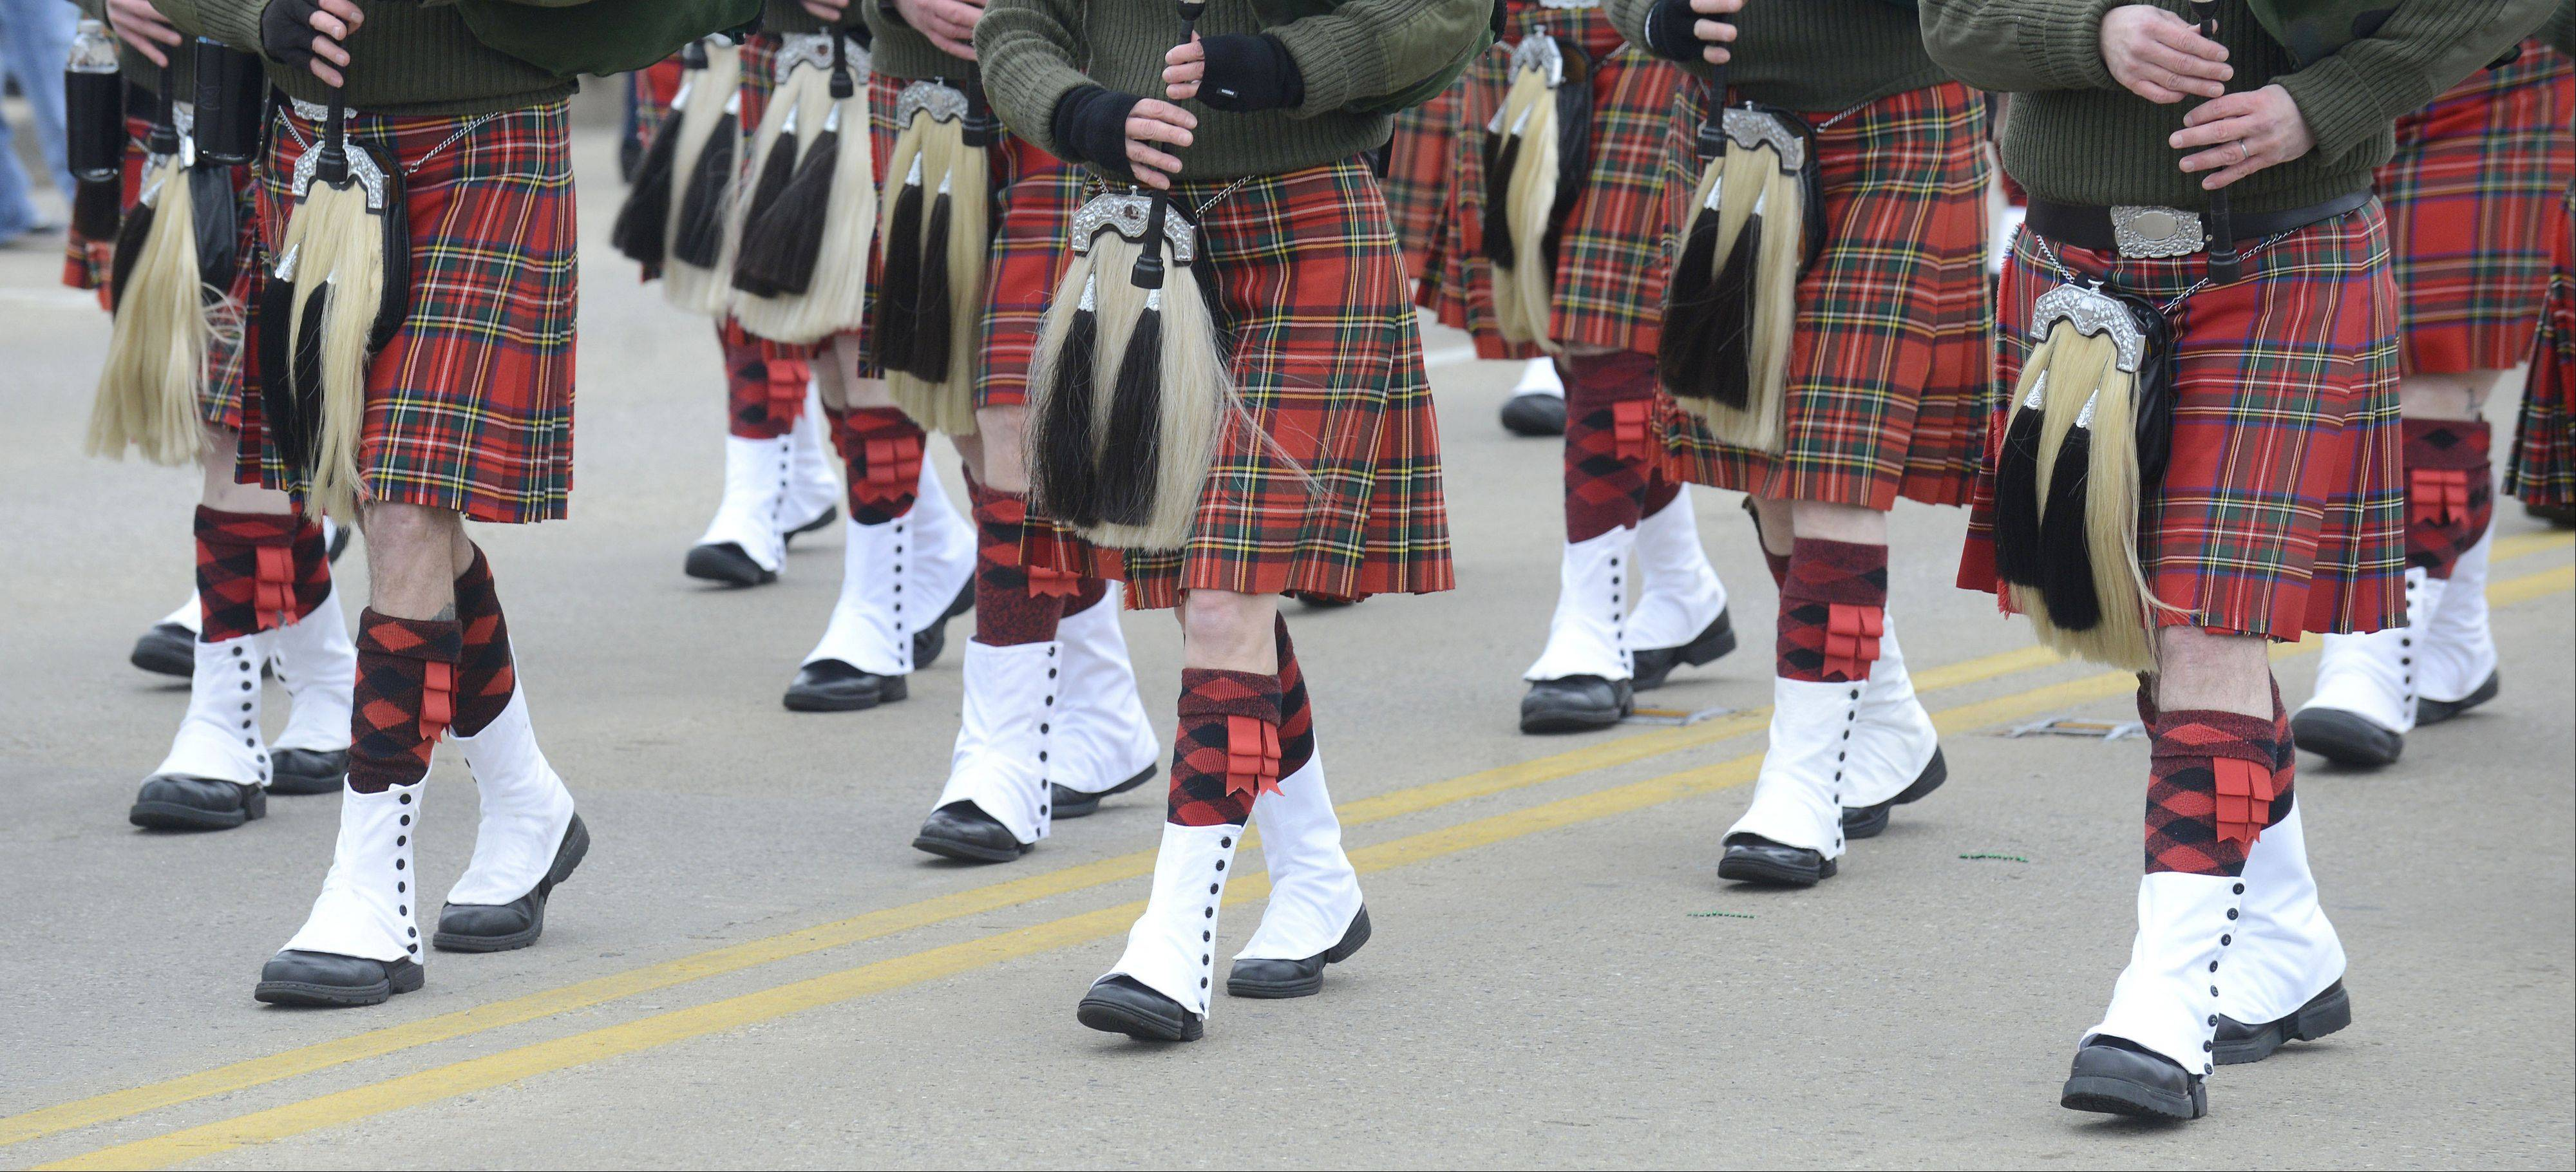 The Chicago Highlanders Pipes and Drums marches down Main Street in the St. Patrick's Day parade in St. Charles on Saturday.